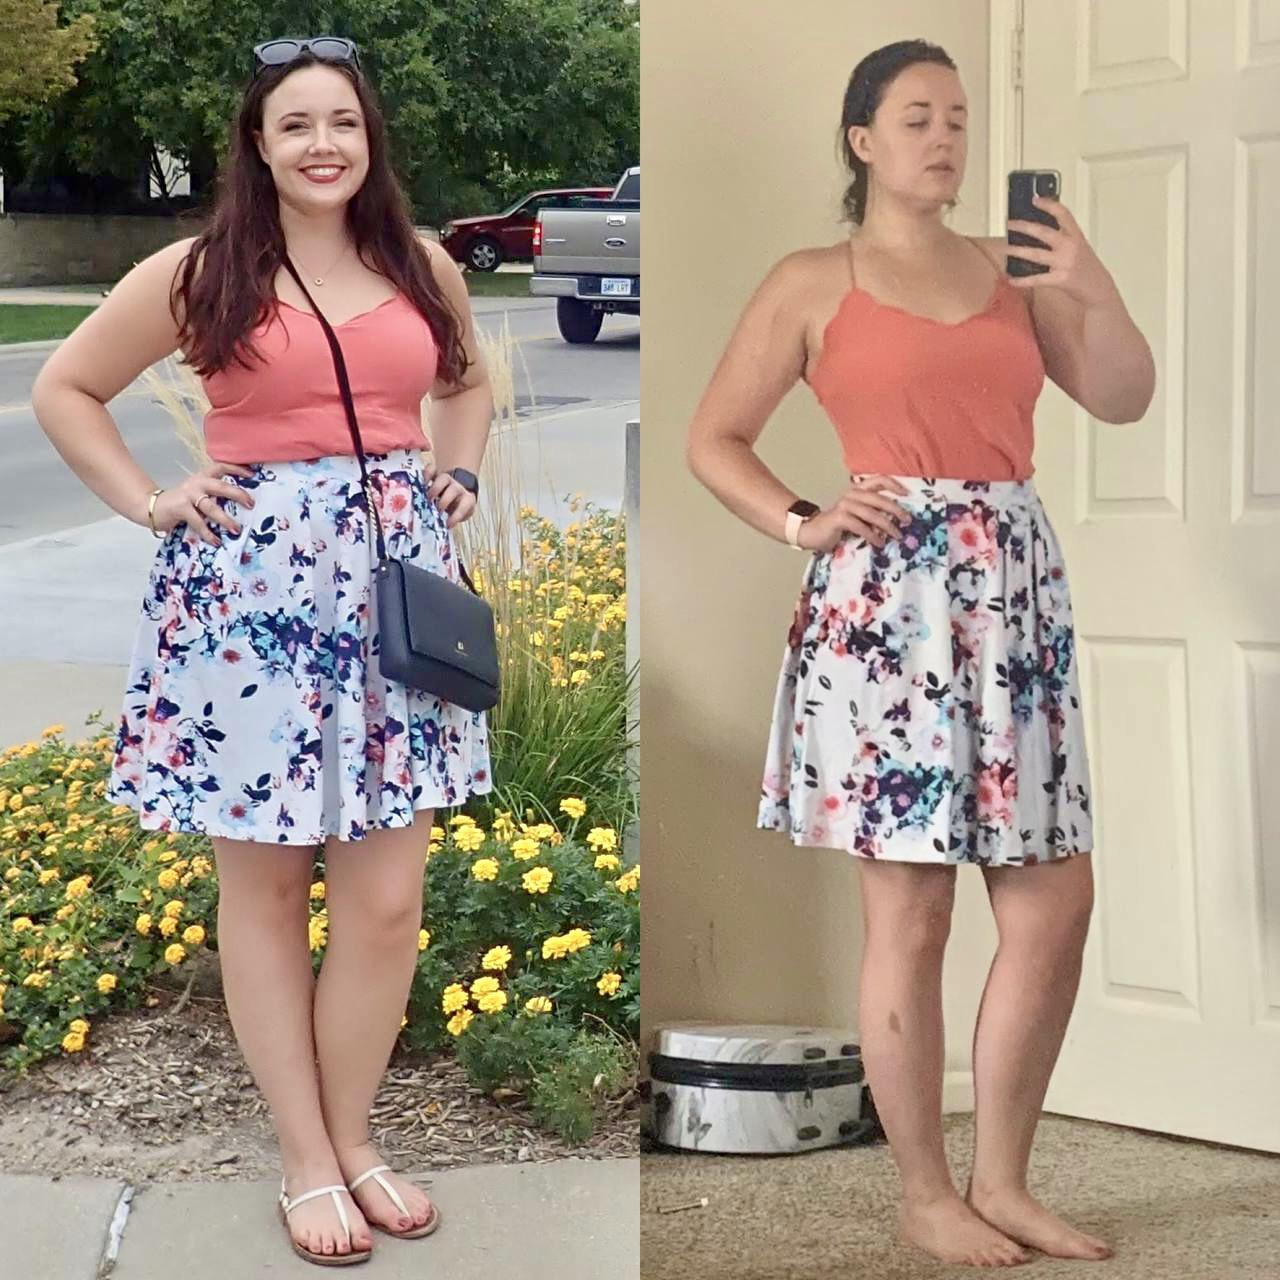 1 lbs Weight Loss Before and After 5 foot 8 Female 189 lbs to 188 lbs